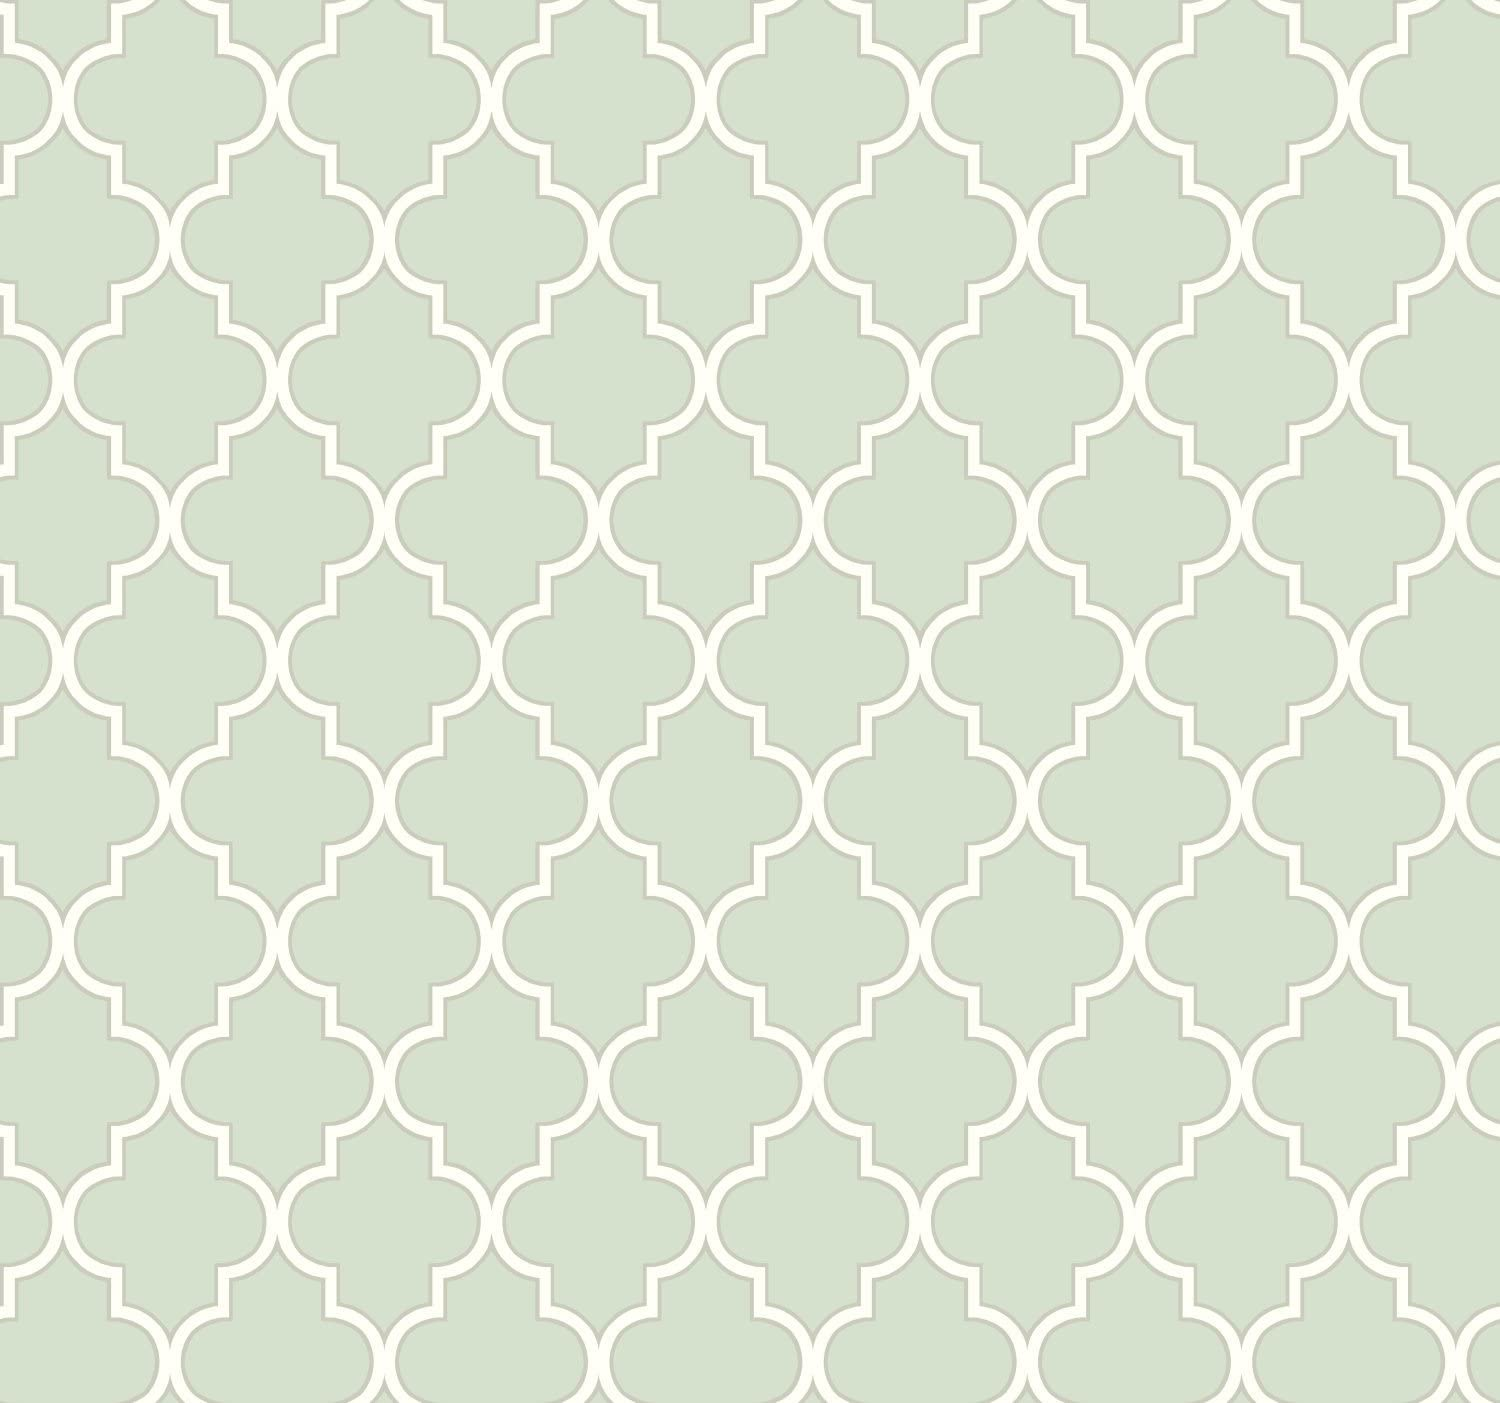 York Wallcoverings Spa Blues Buzzing Around Trellis Removable Wallpaper, Greens